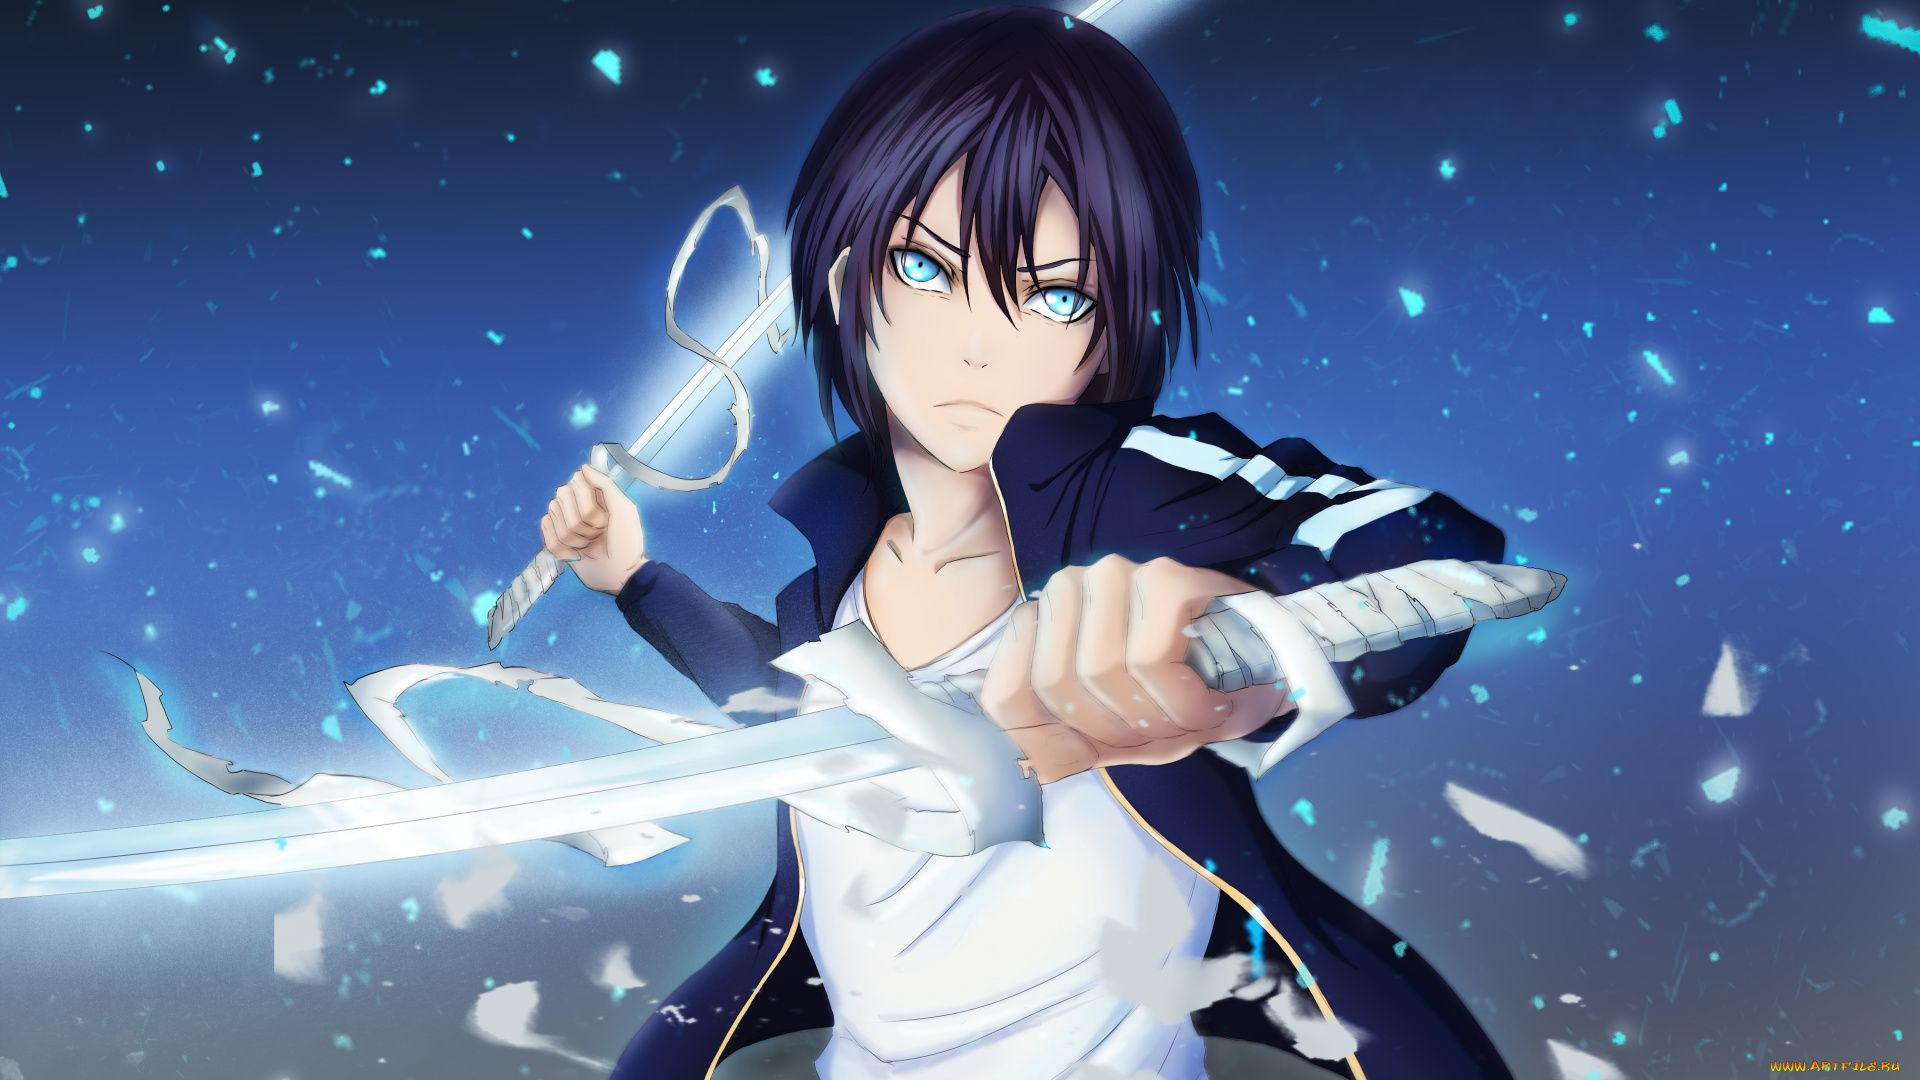 Yato From The Anime Homeless God